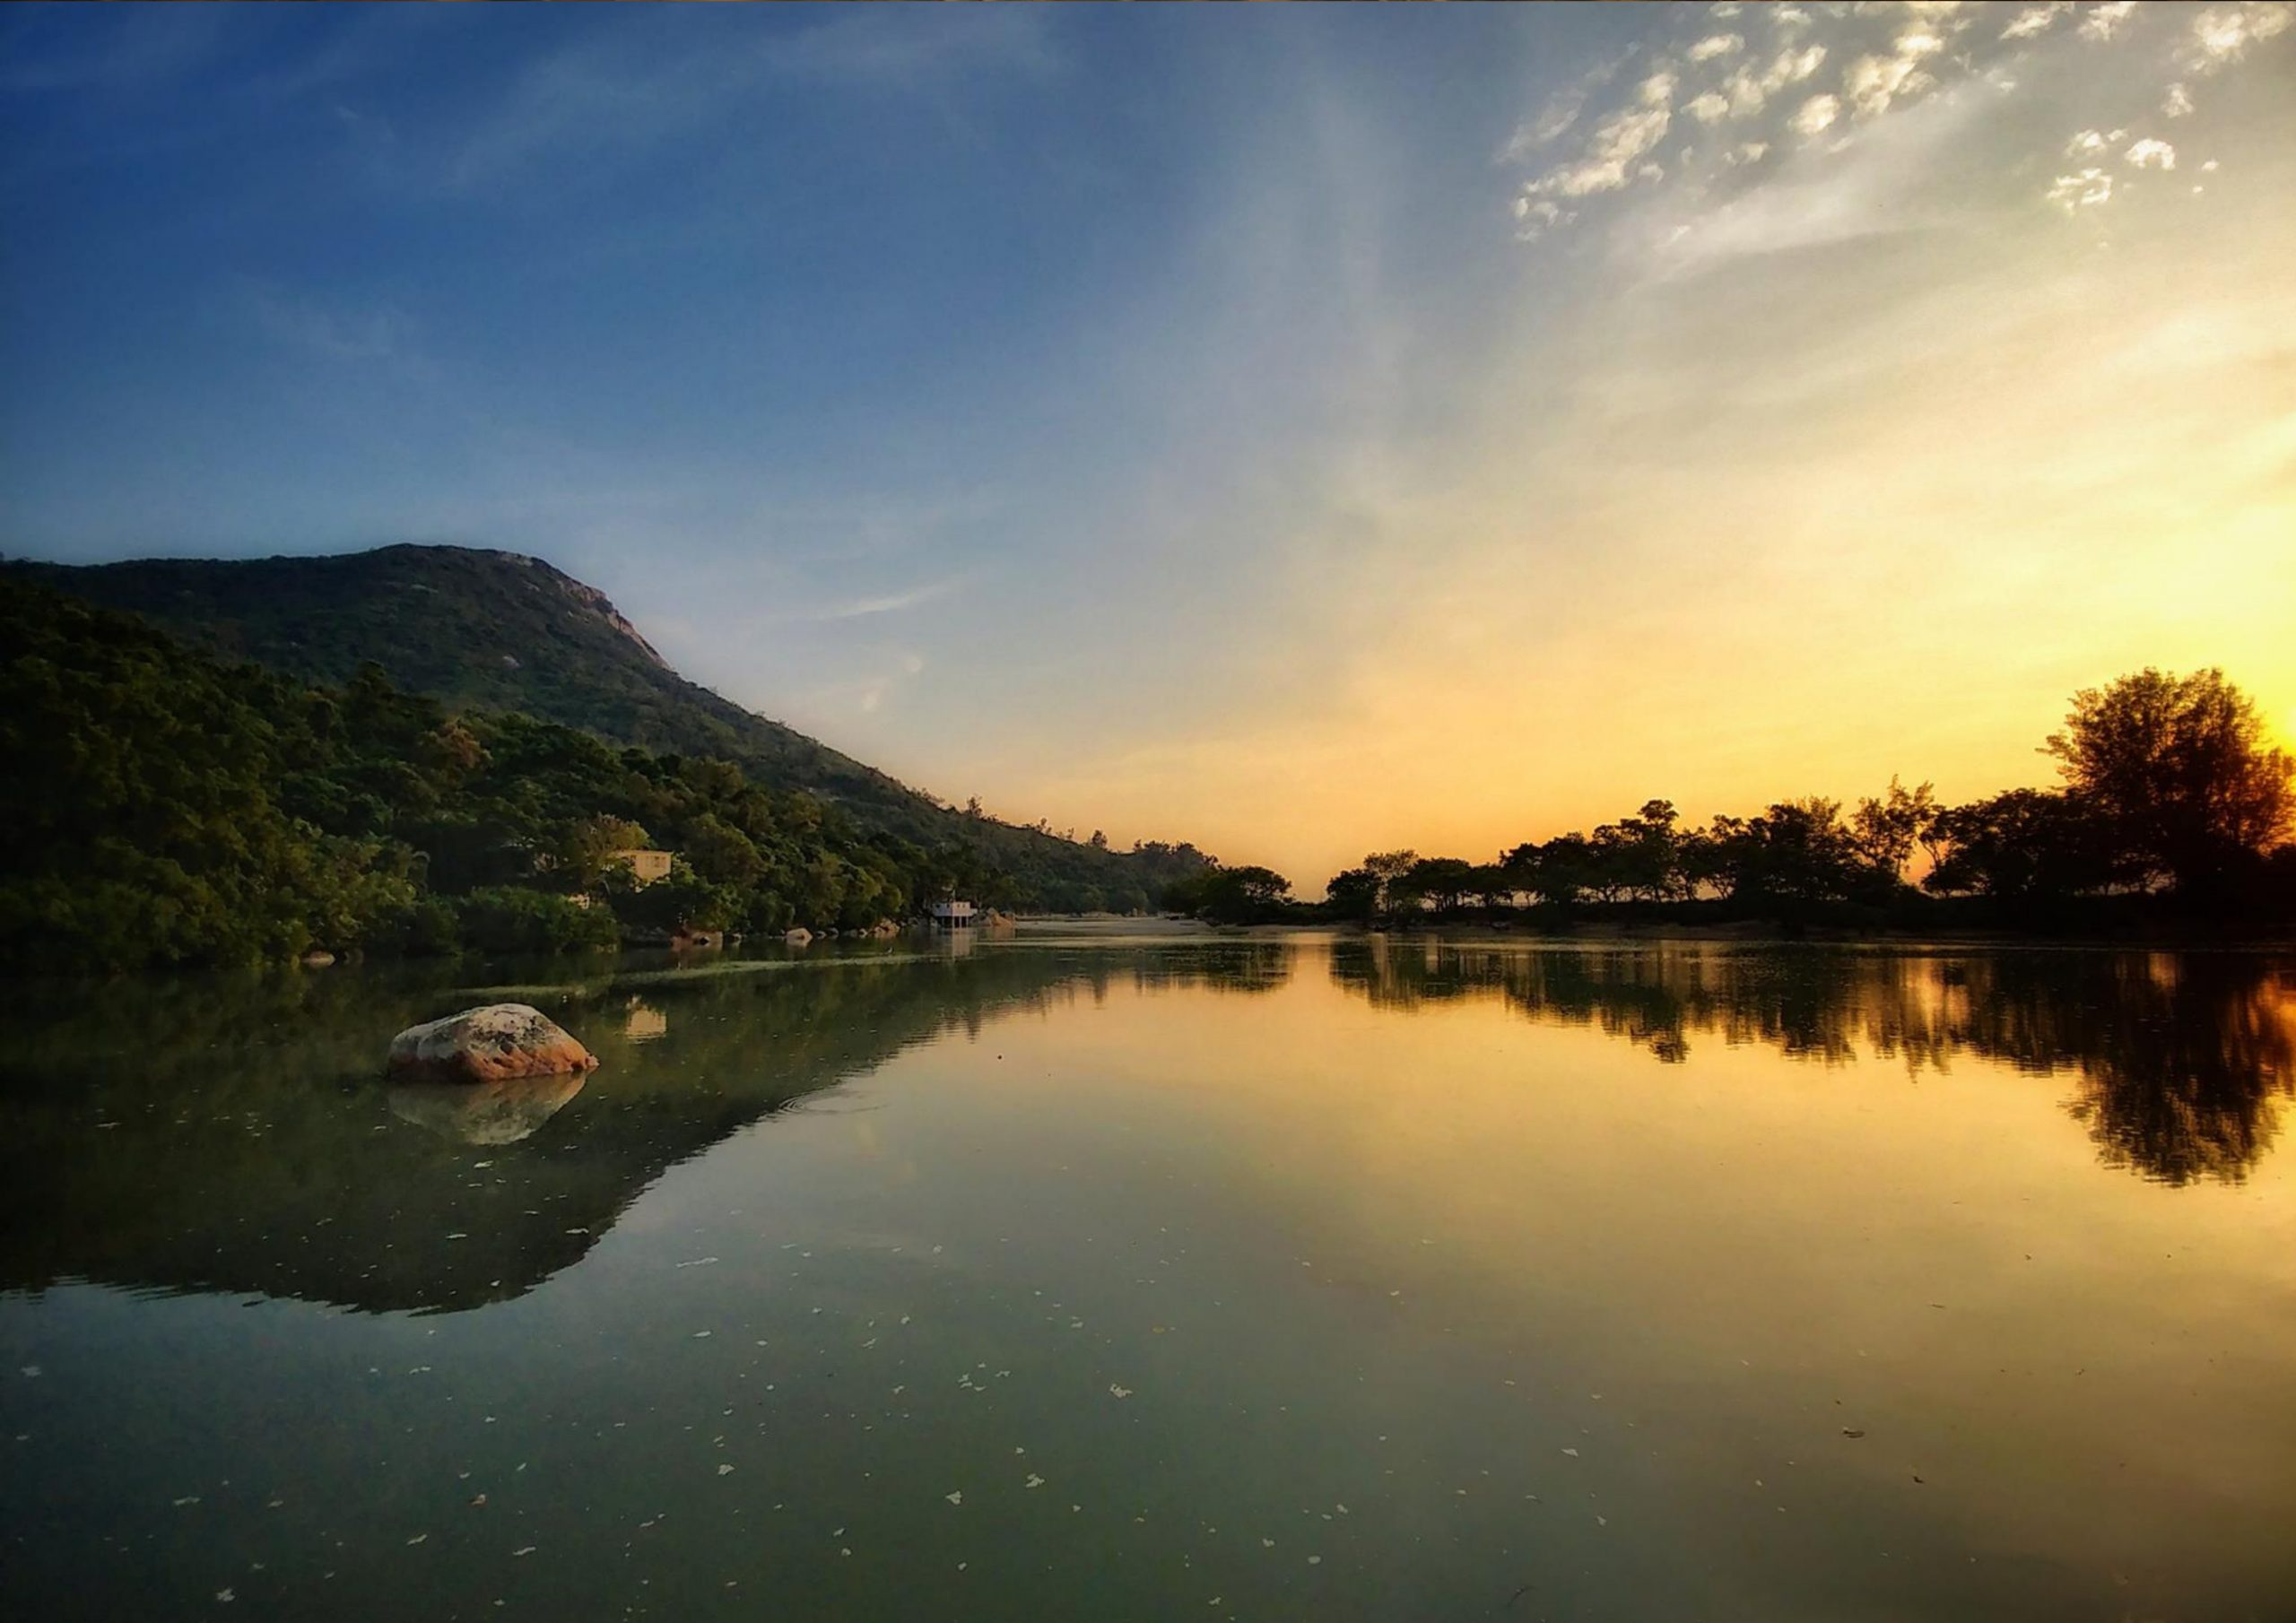 Enjoy the mirror of the sky at Pui O